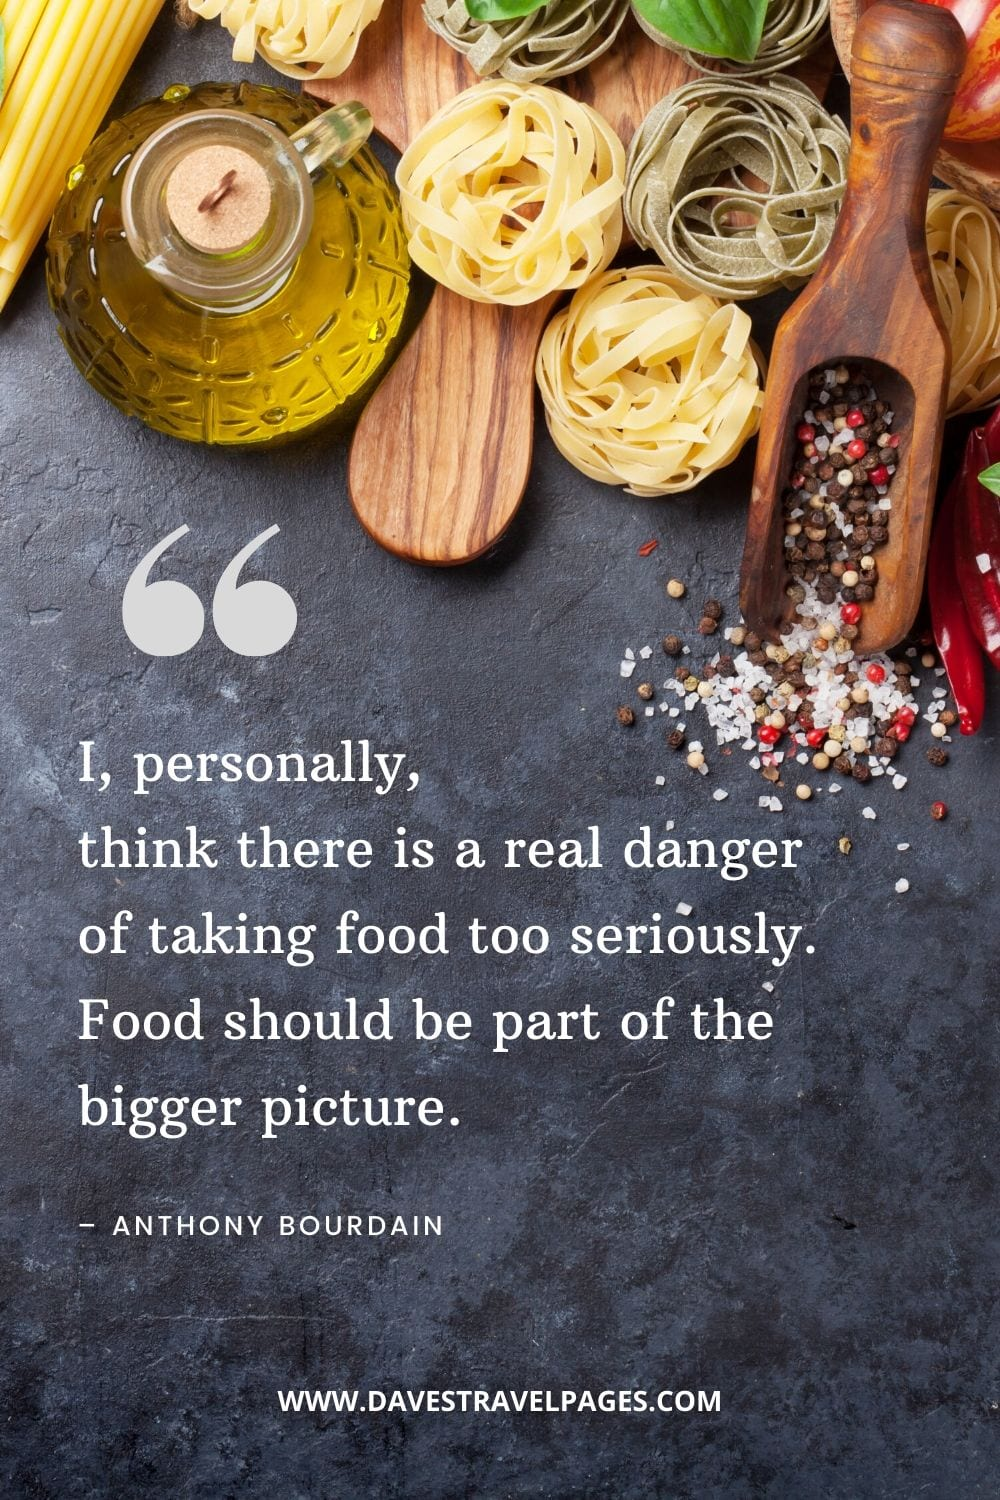 """""""I, personally, think there is a real danger of taking food too seriously. Food should be part of the bigger picture."""" – Anthony Bourdain quote about food"""